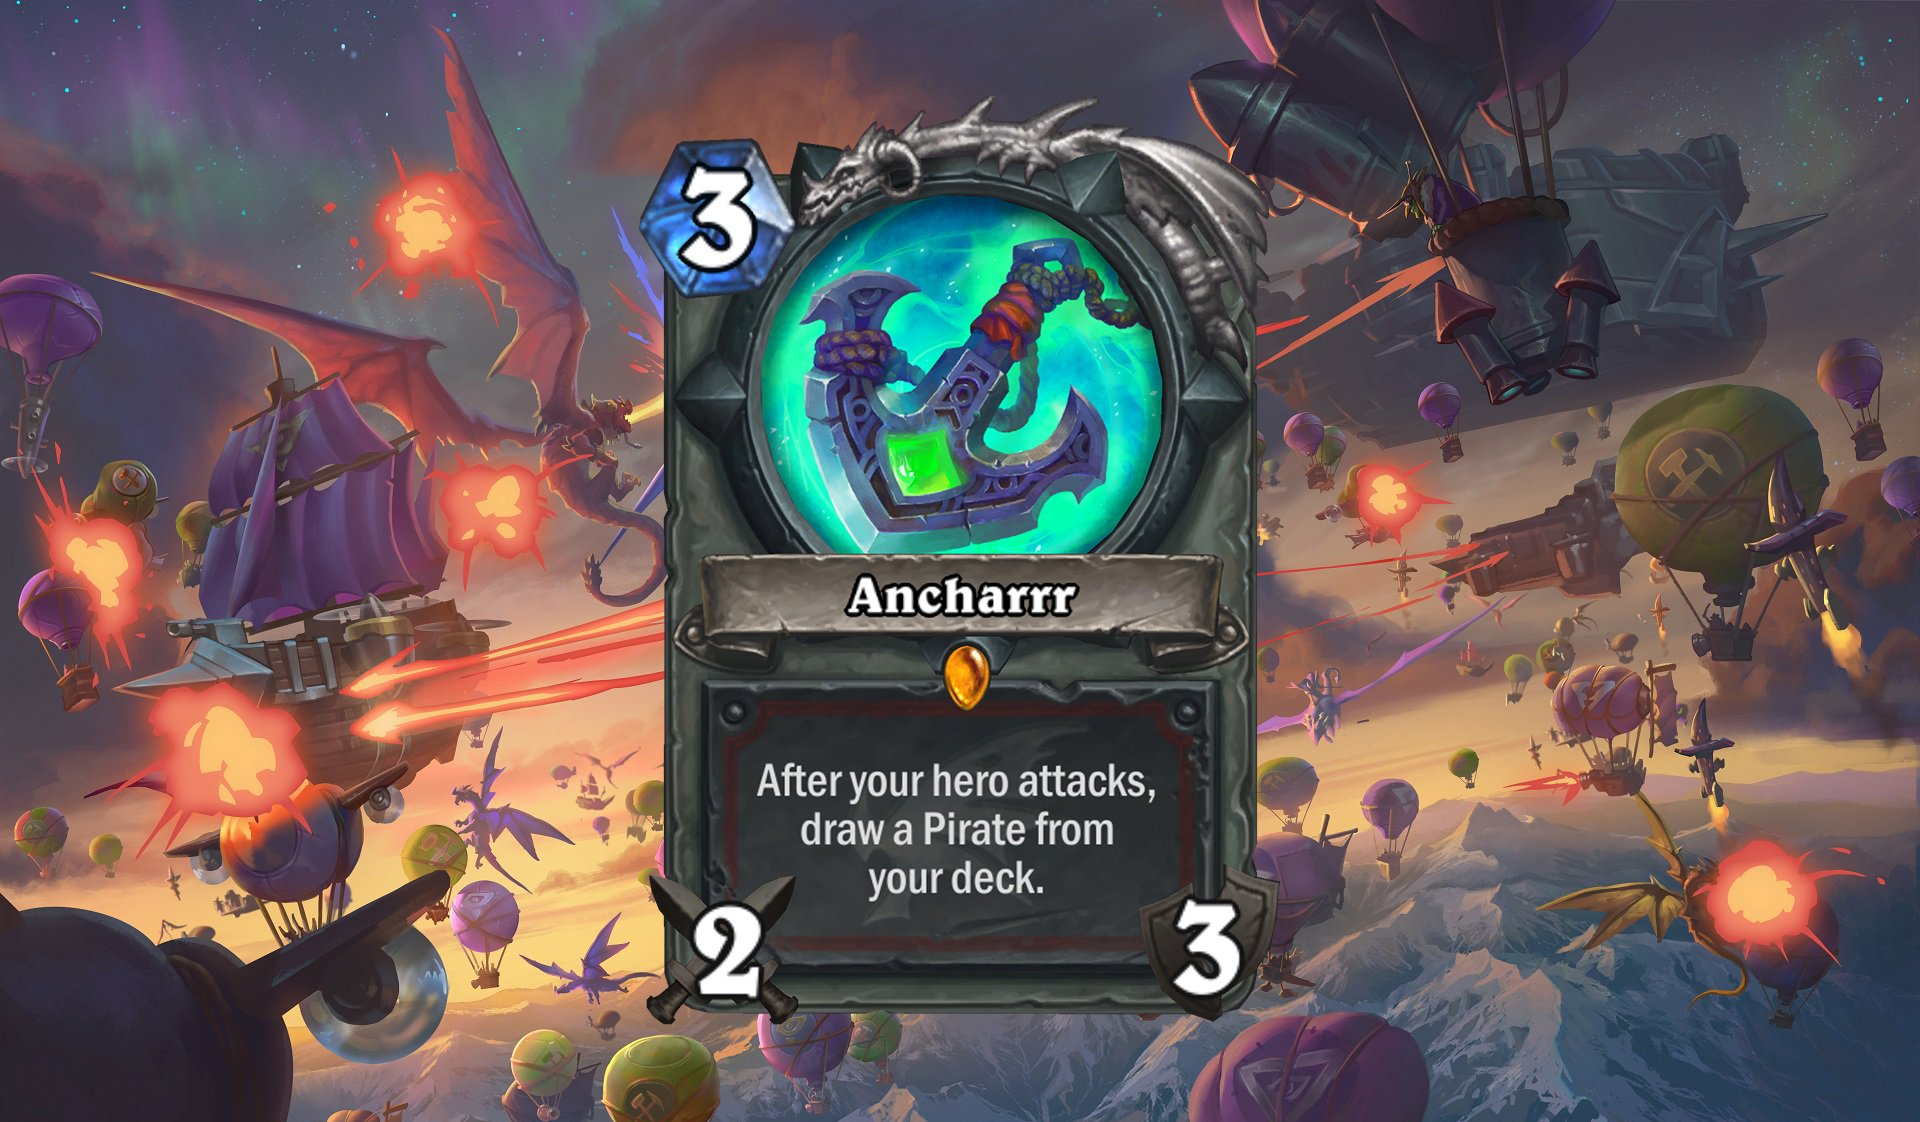 Hearthstone - Ancharrr